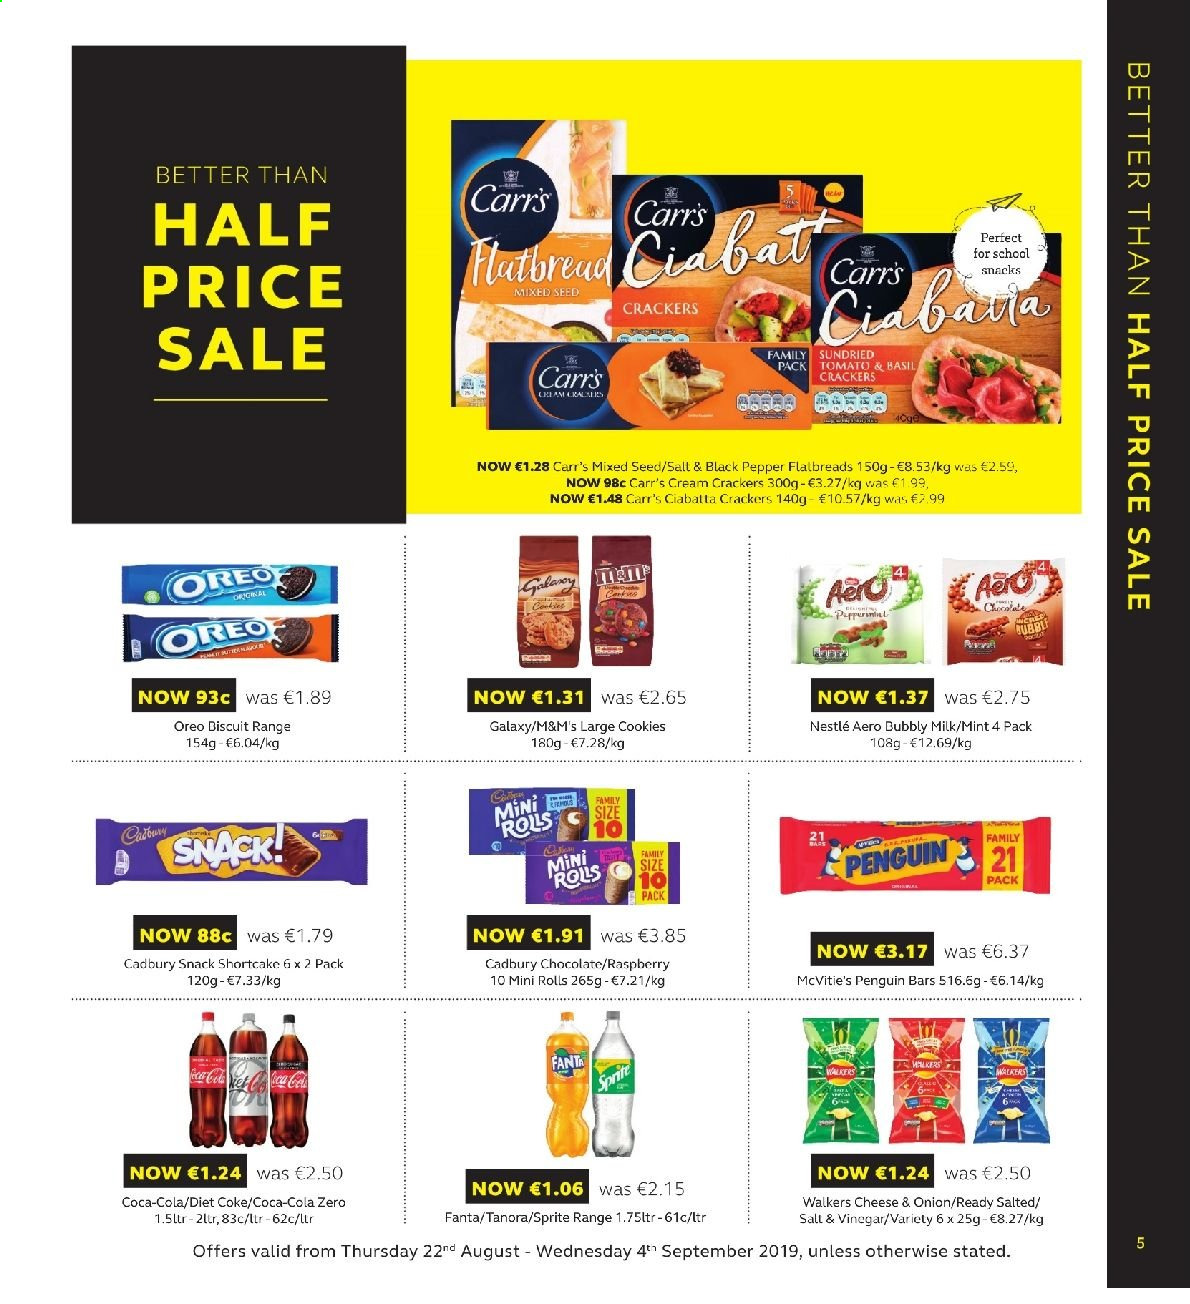 SuperValu offer  - 22.8.2019 - 4.9.2019 - Sales products - ciabatta, rolls, Oreo, milk, cookies, Nestlé, chocolate, M&M's, crackers, Cadbury, snack, black pepper, vinegar, Coca-Cola, Sprite, Fanta, Diet Coke, Coca-Cola zero, Samsung Galaxy. Page 5.